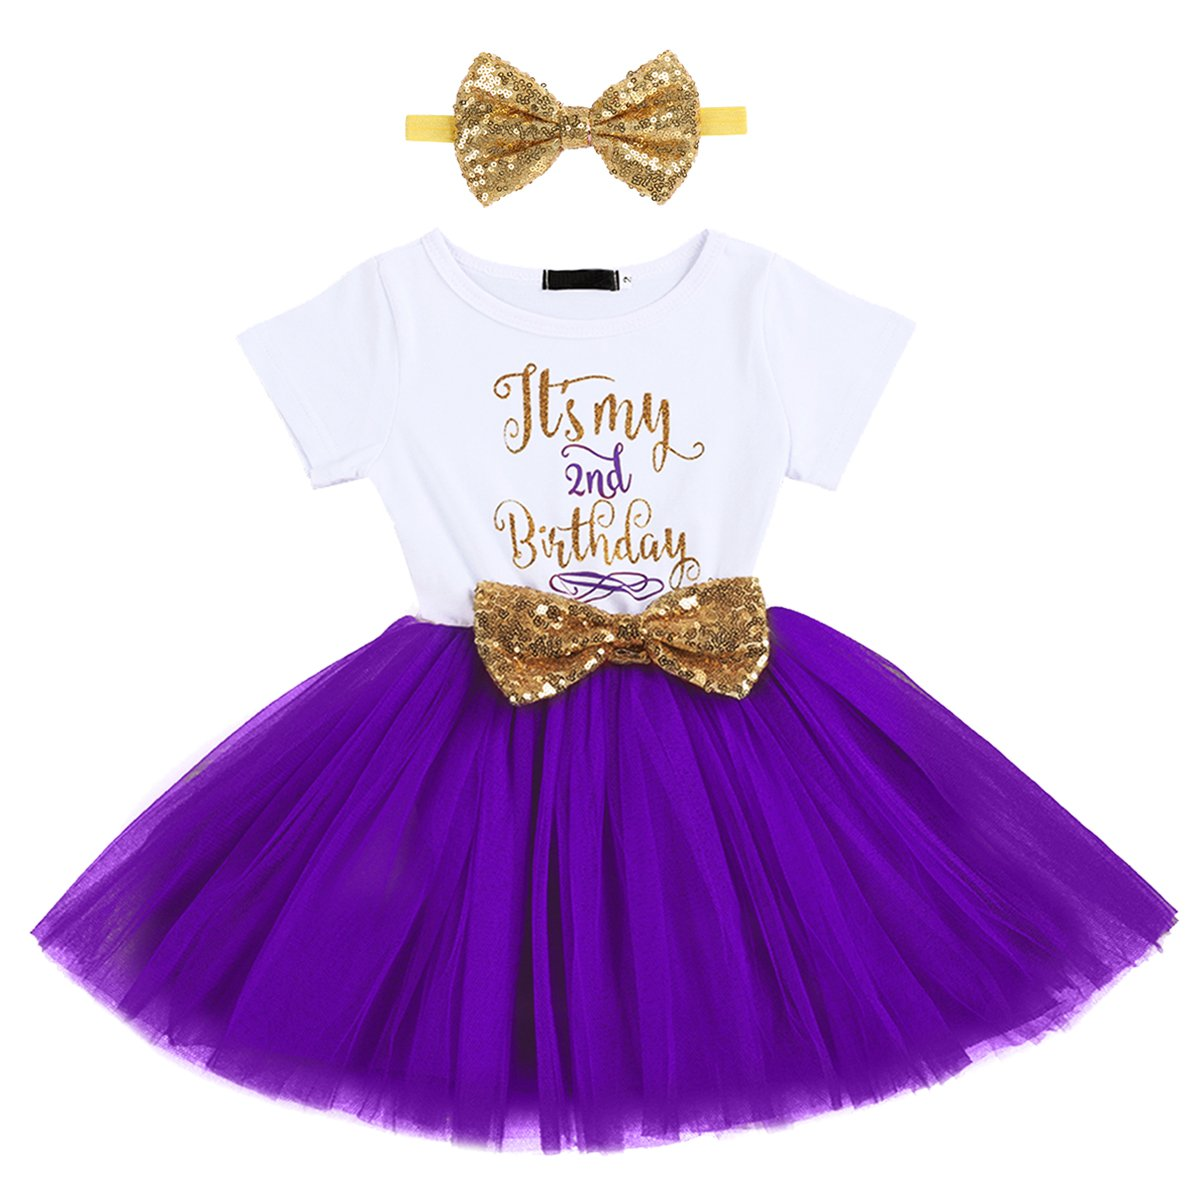 Newborn Baby Girl Princess Its My 1st//2nd Birthday Party Cake Smash Shinny Sequin Bow Tie Tulle Tutu Dress Outfit